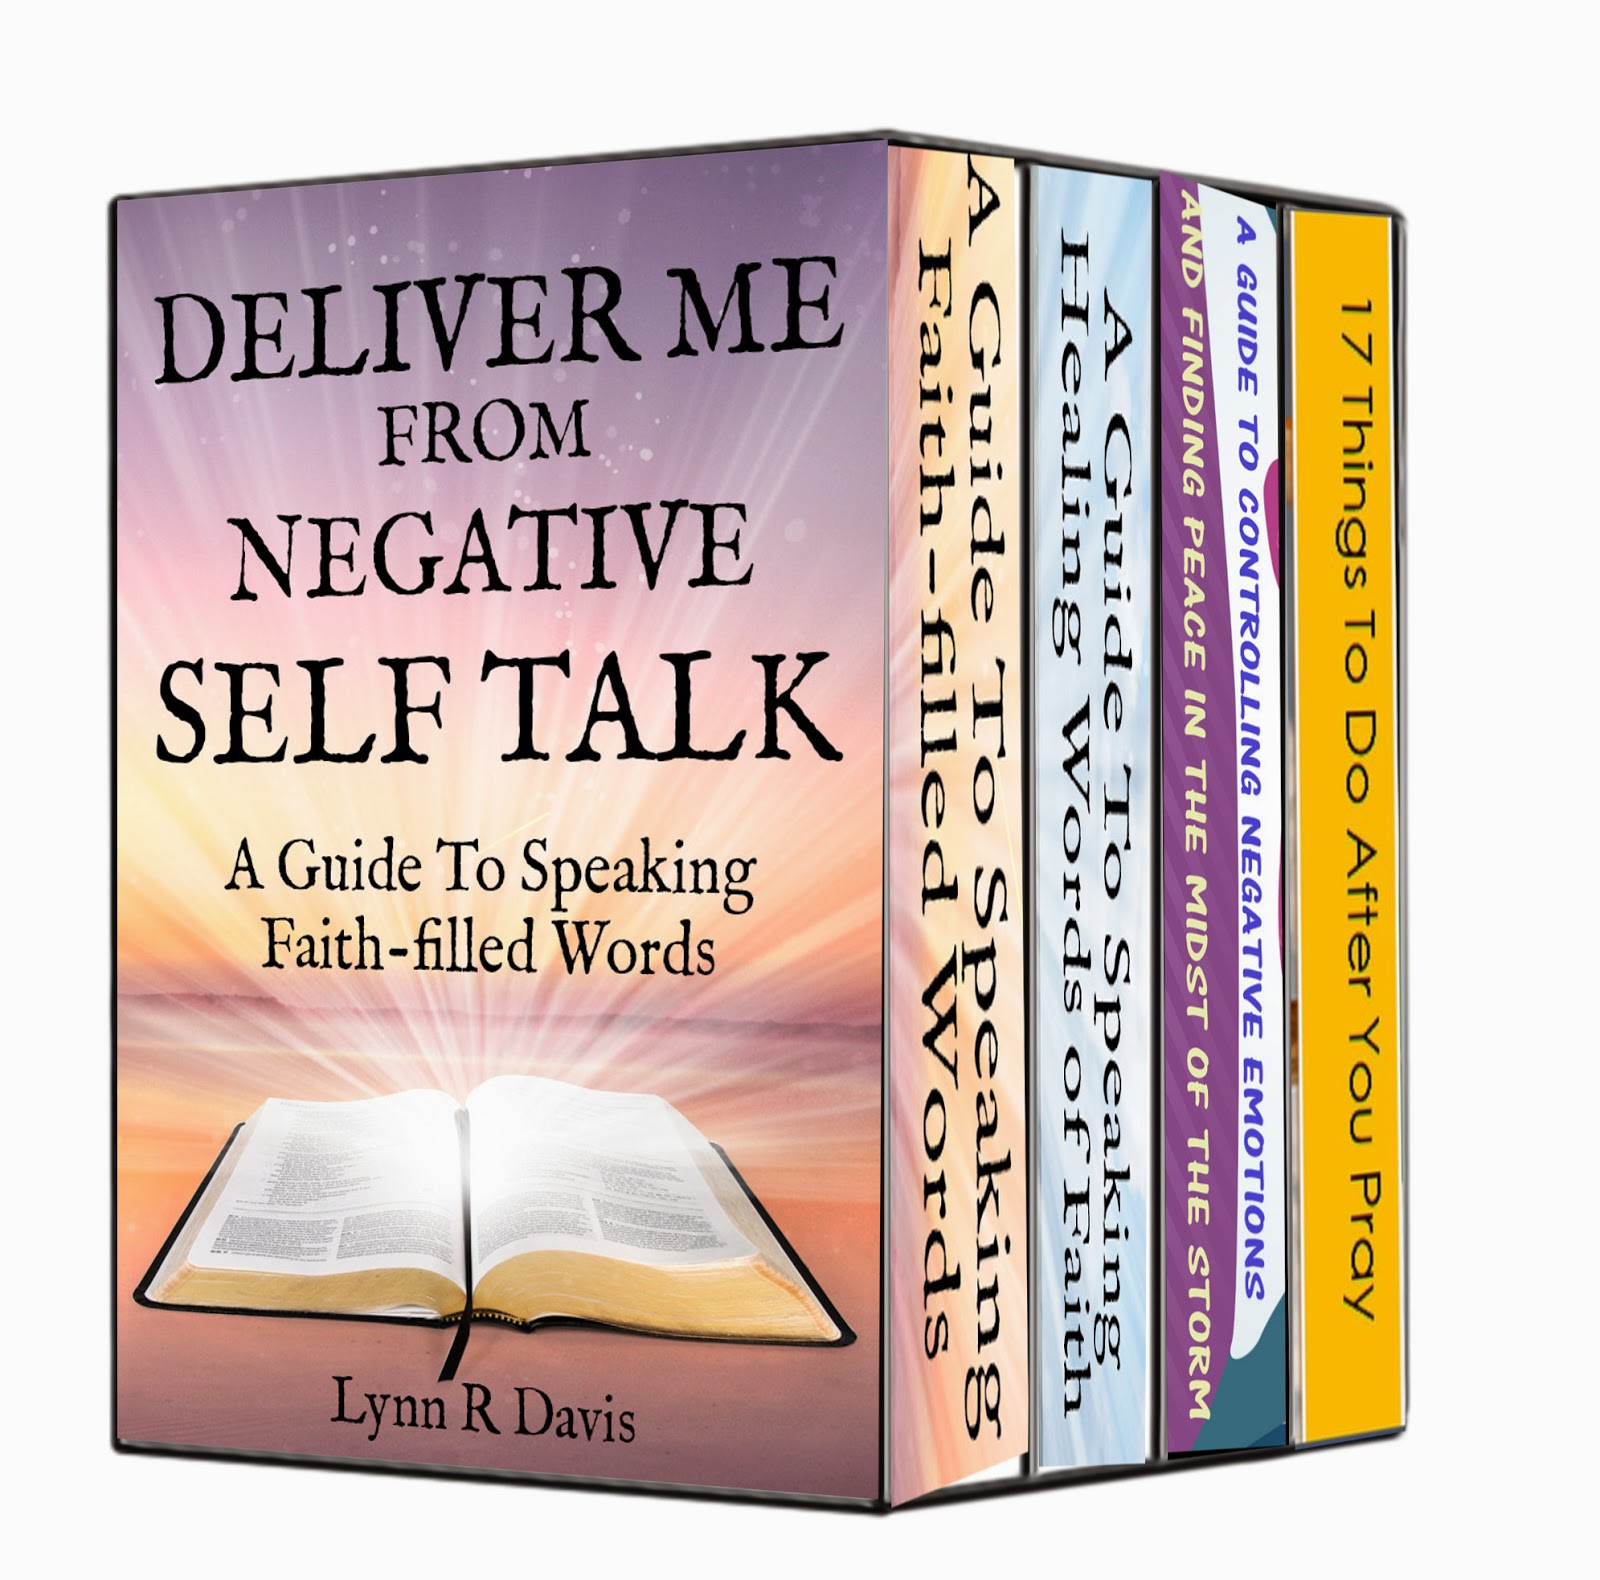 How To Write Your Own Self Help Book in 12 Days